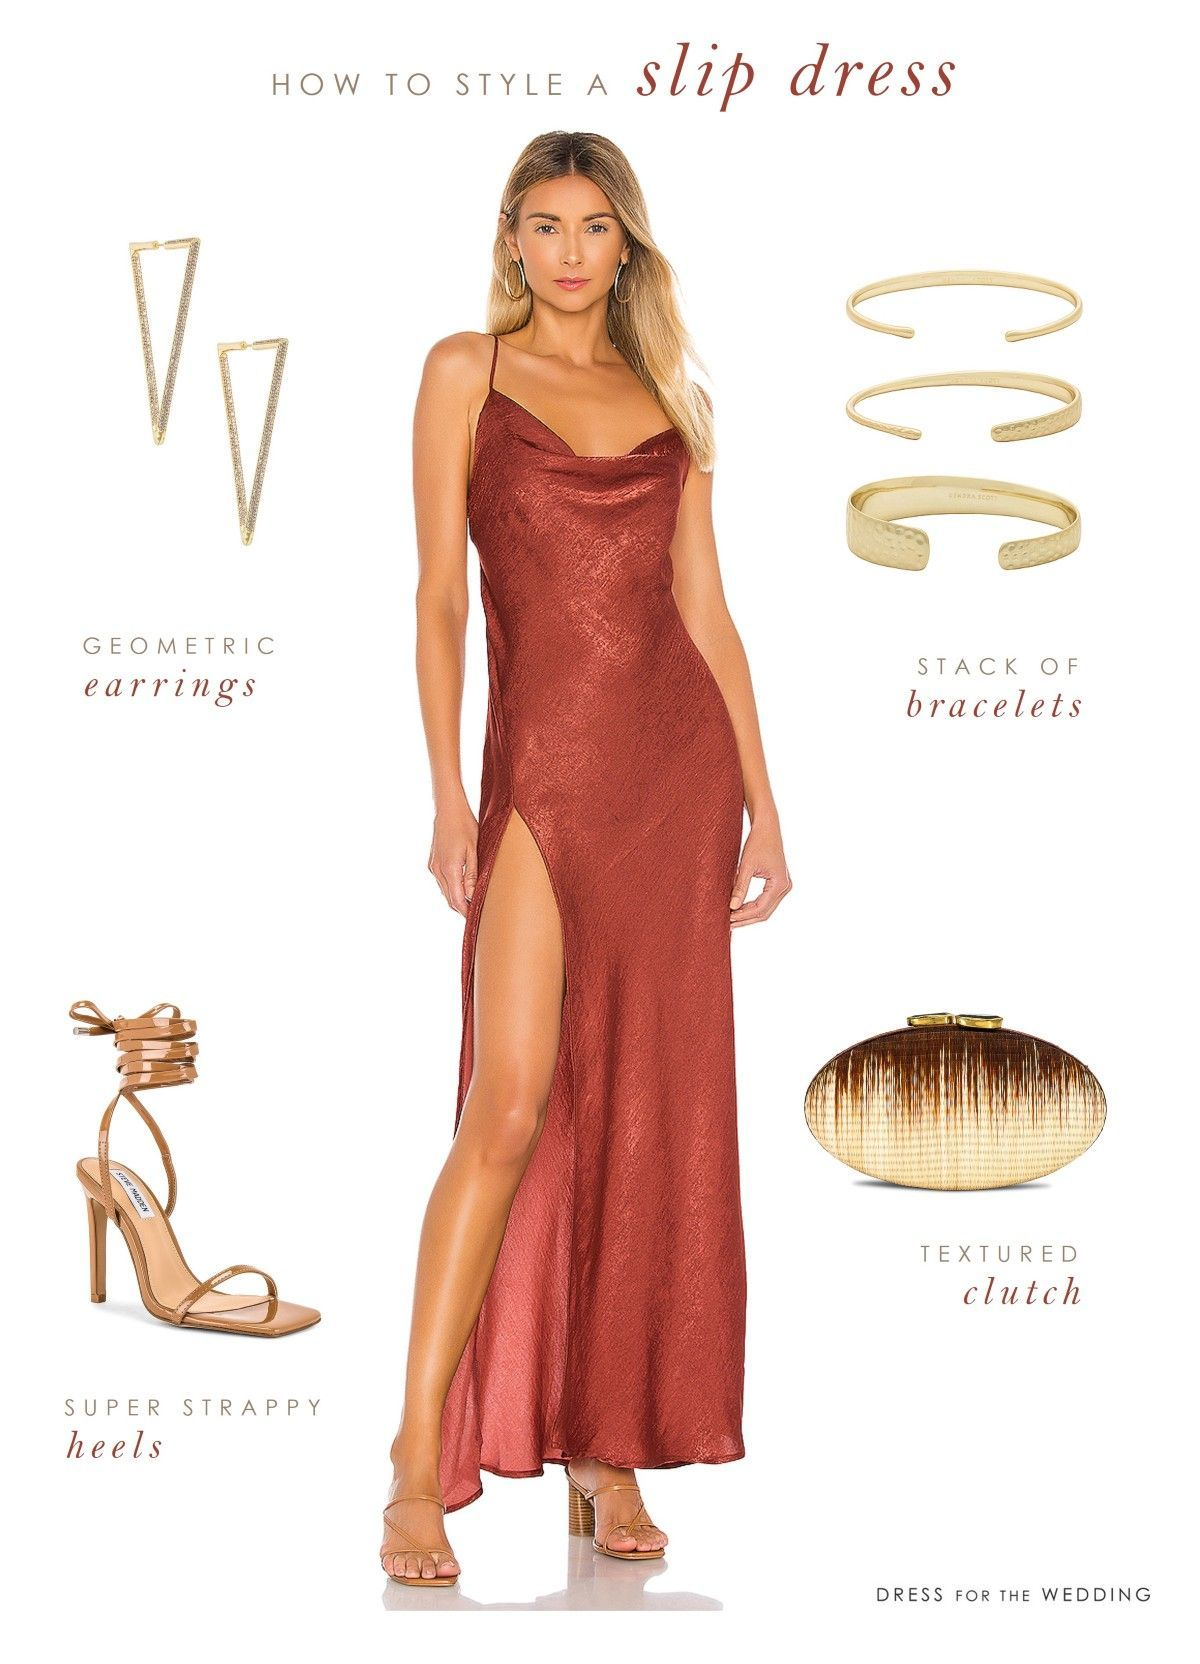 How To Style A Slip Dress Dress For The Wedding Red Wedding Dresses Satin Formal Dress Fall Formal Dresses [ 1664 x 1200 Pixel ]